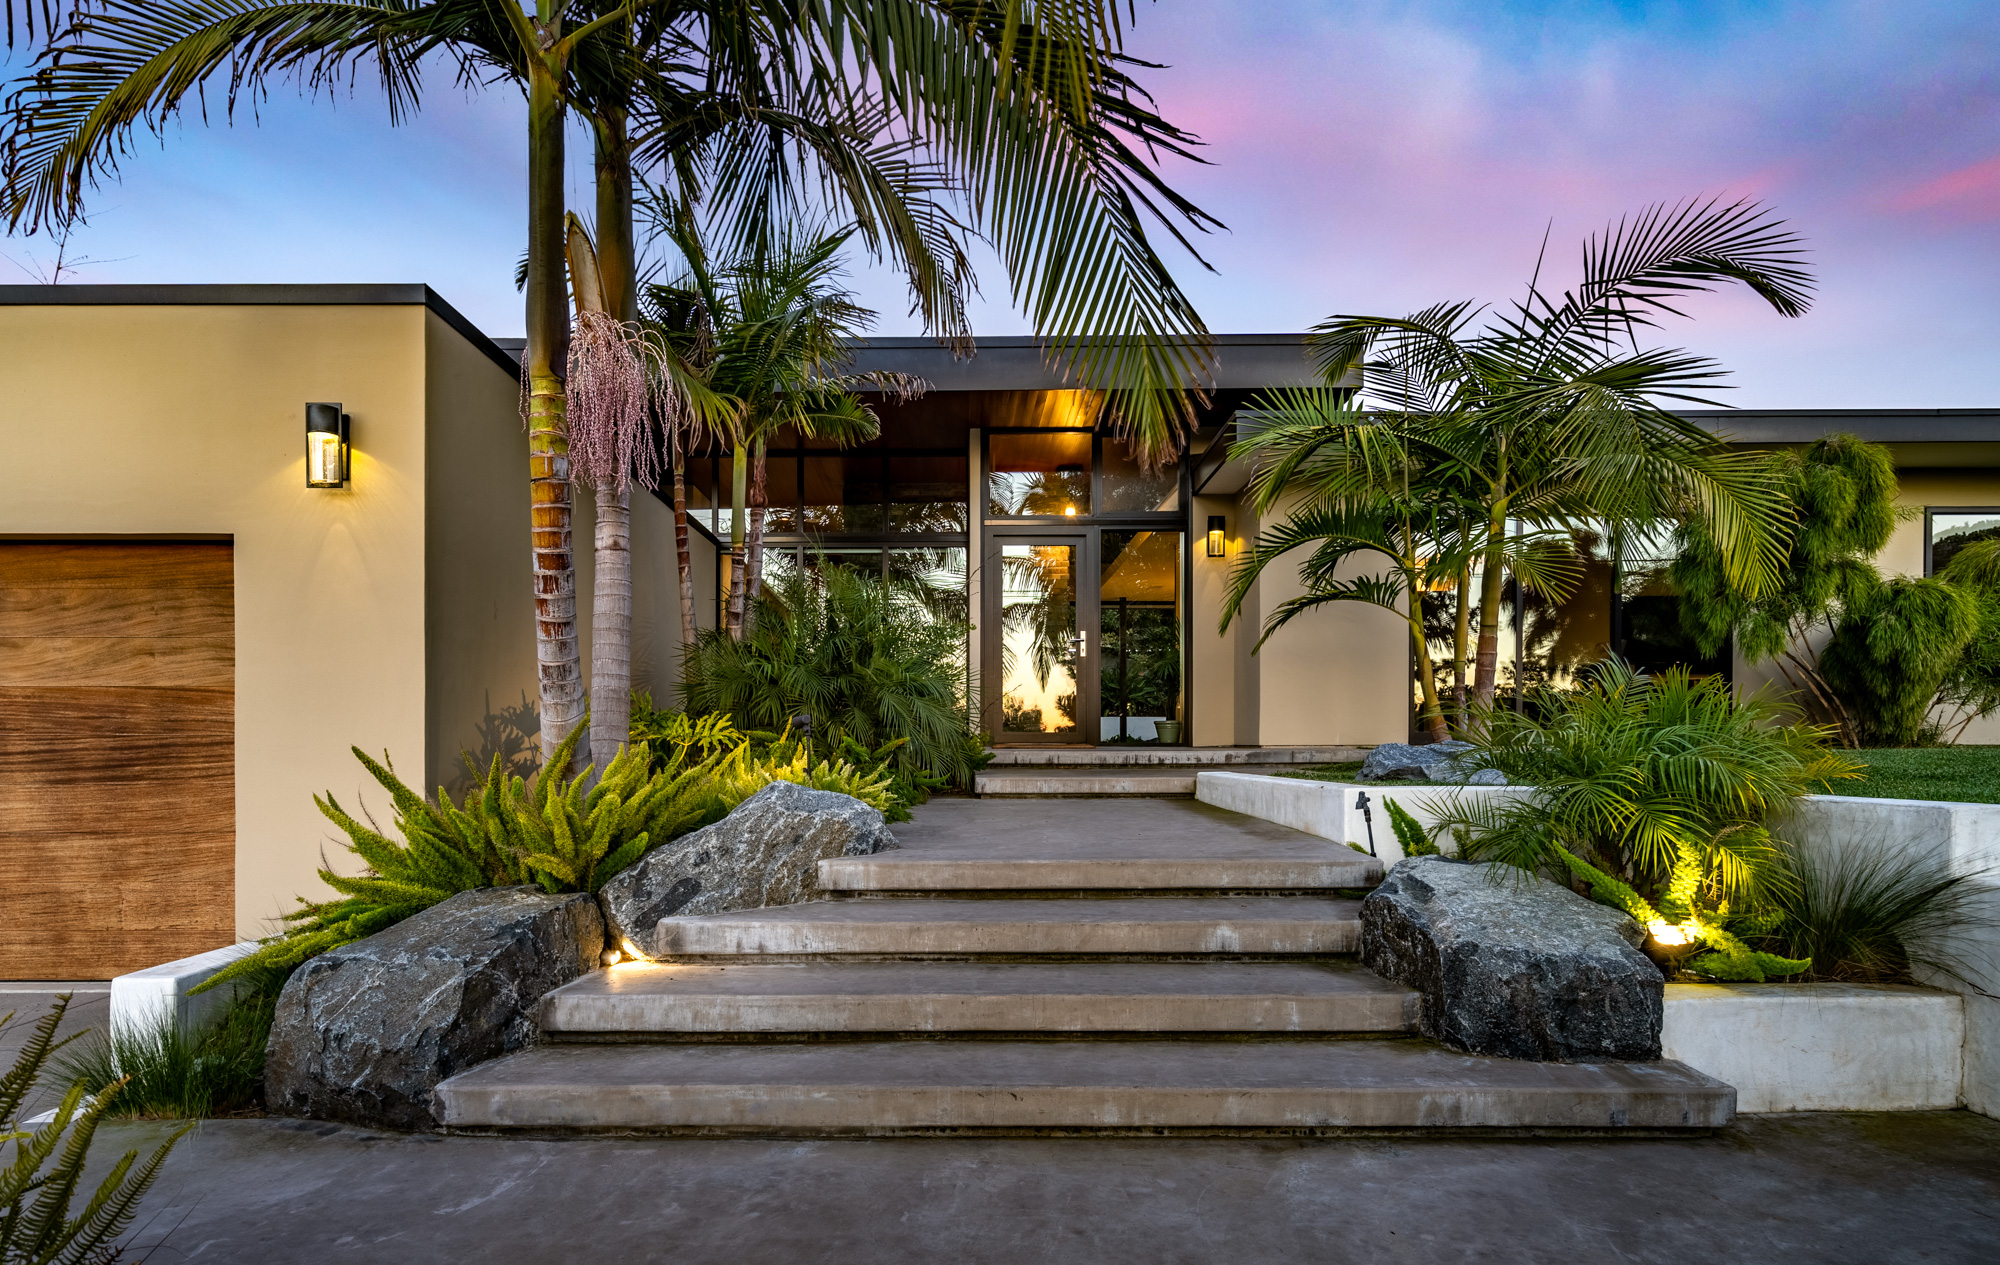 Sold 2020 Represented Buyer & Seller -  Carlsbad, CA 92008